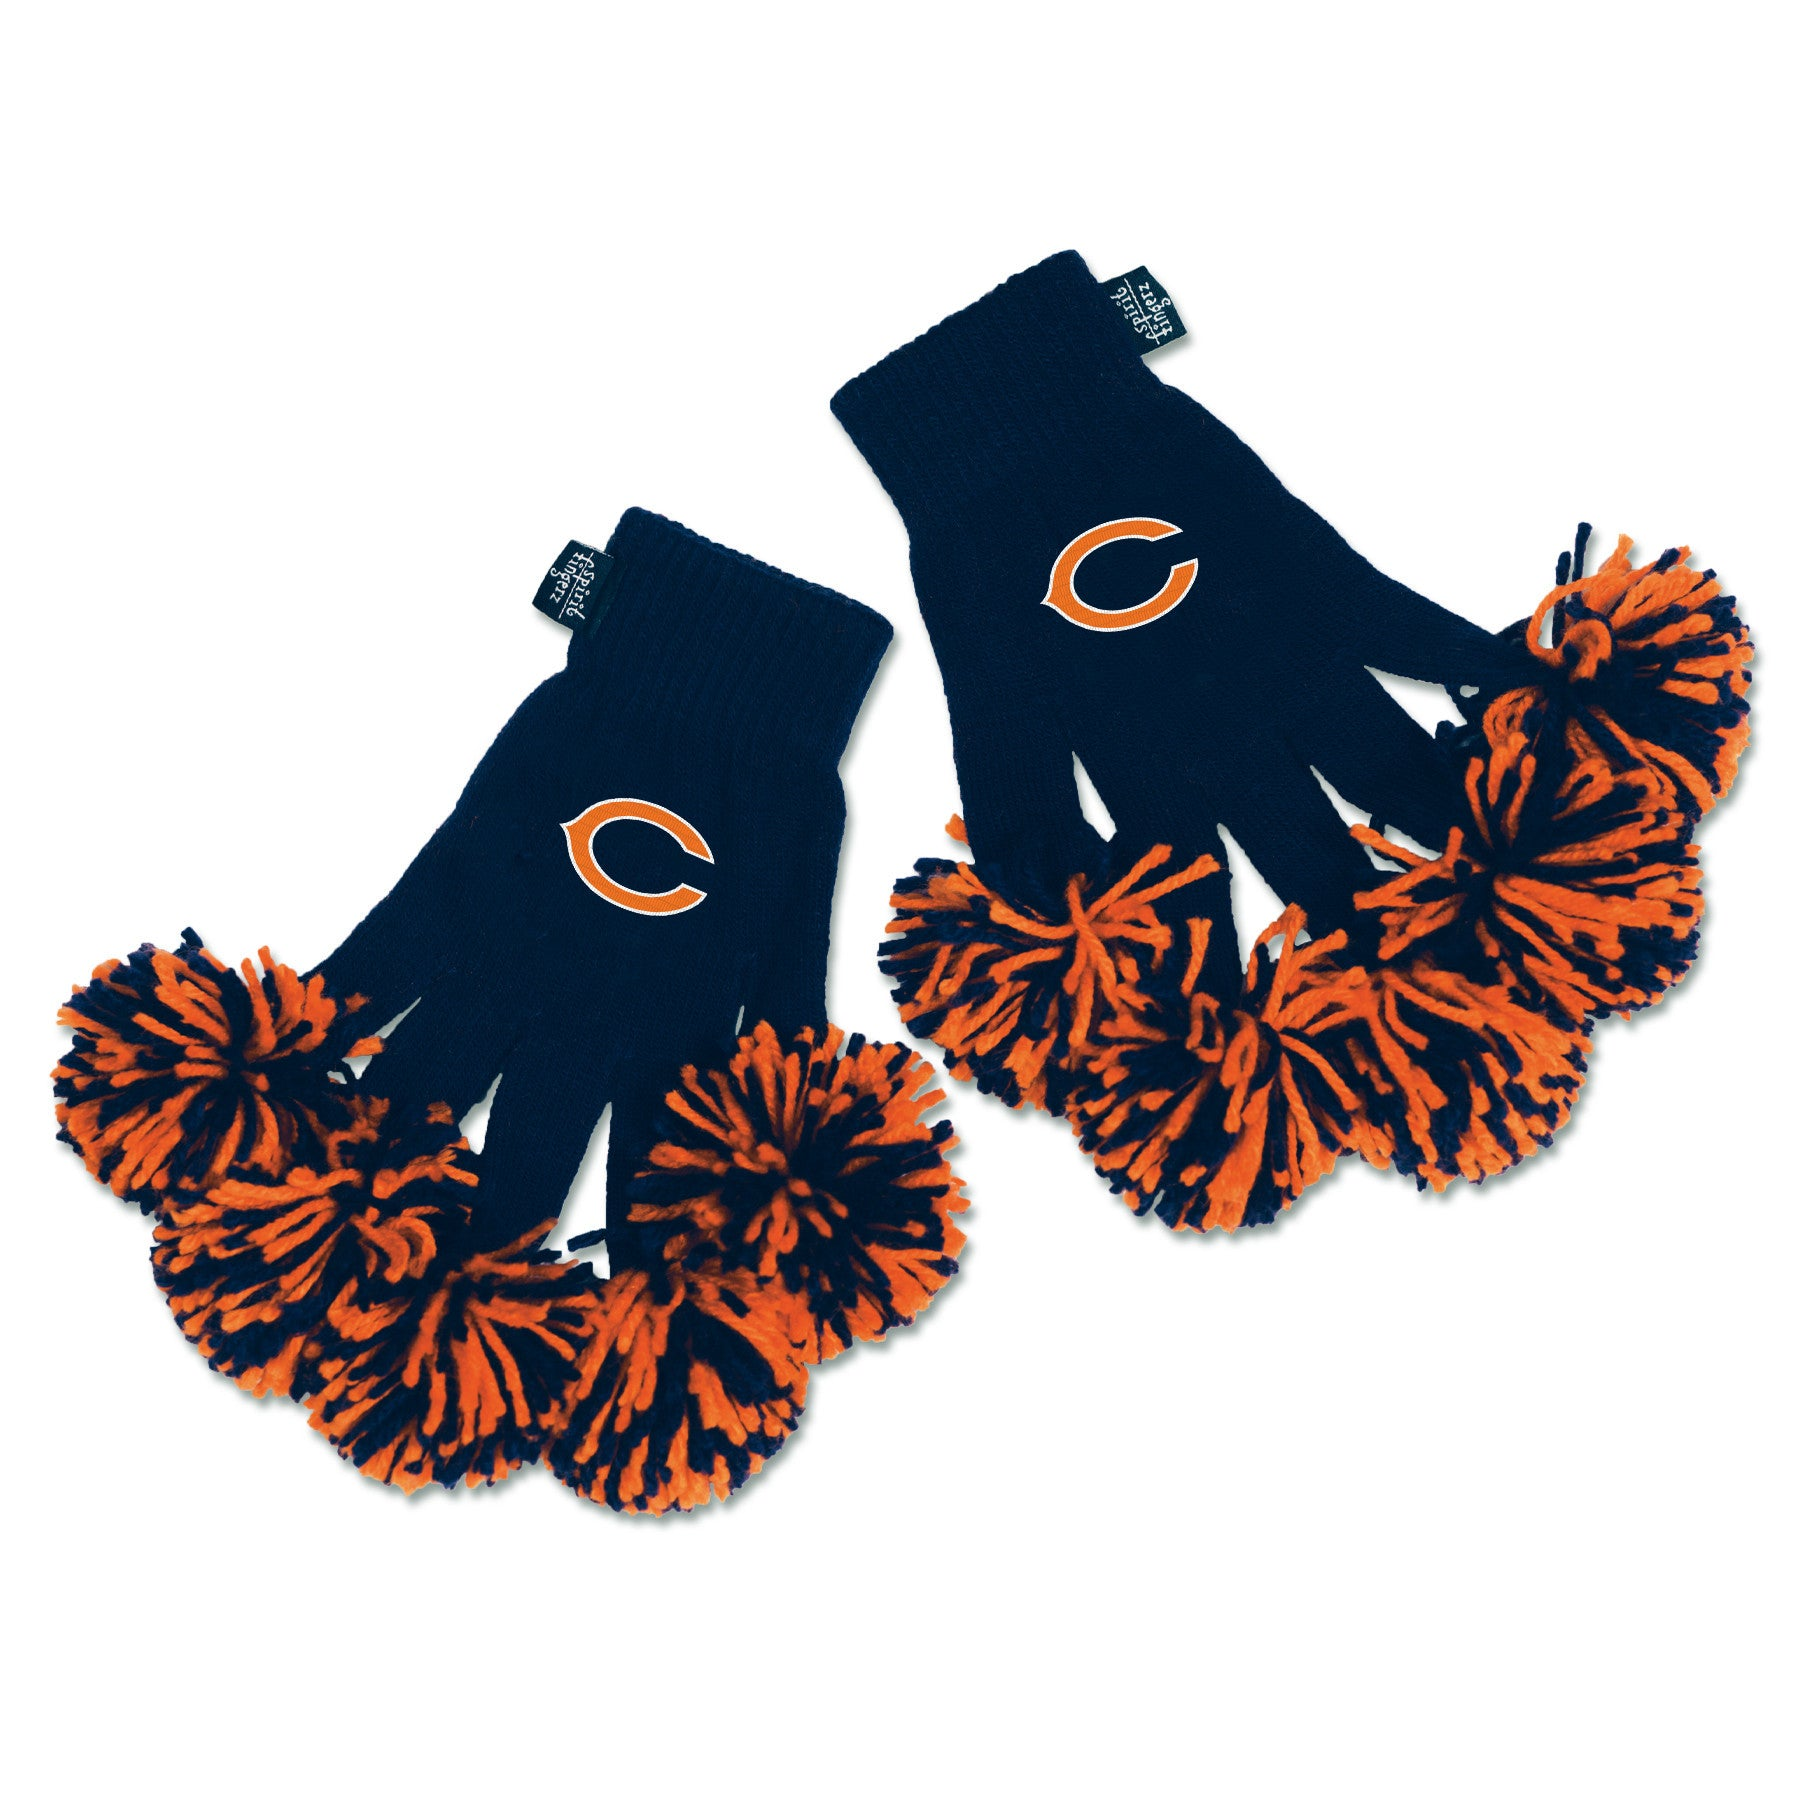 Chicago Bears NFL Spirit Fingerz Cheerleading Pom-Pom Gloves